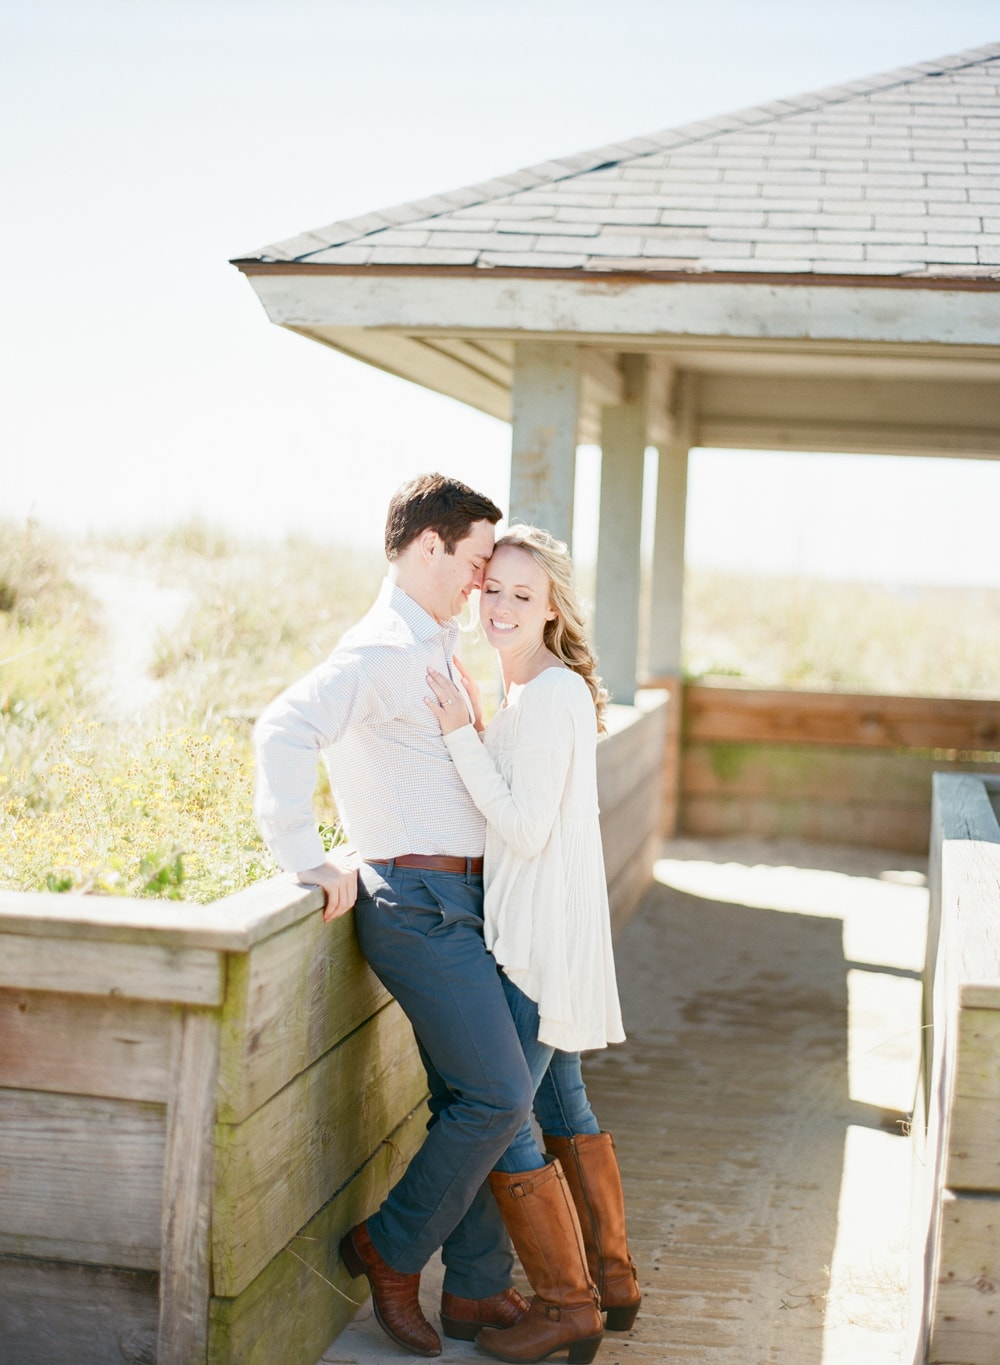 north-carolina-engagement-photography-20-min.jpg